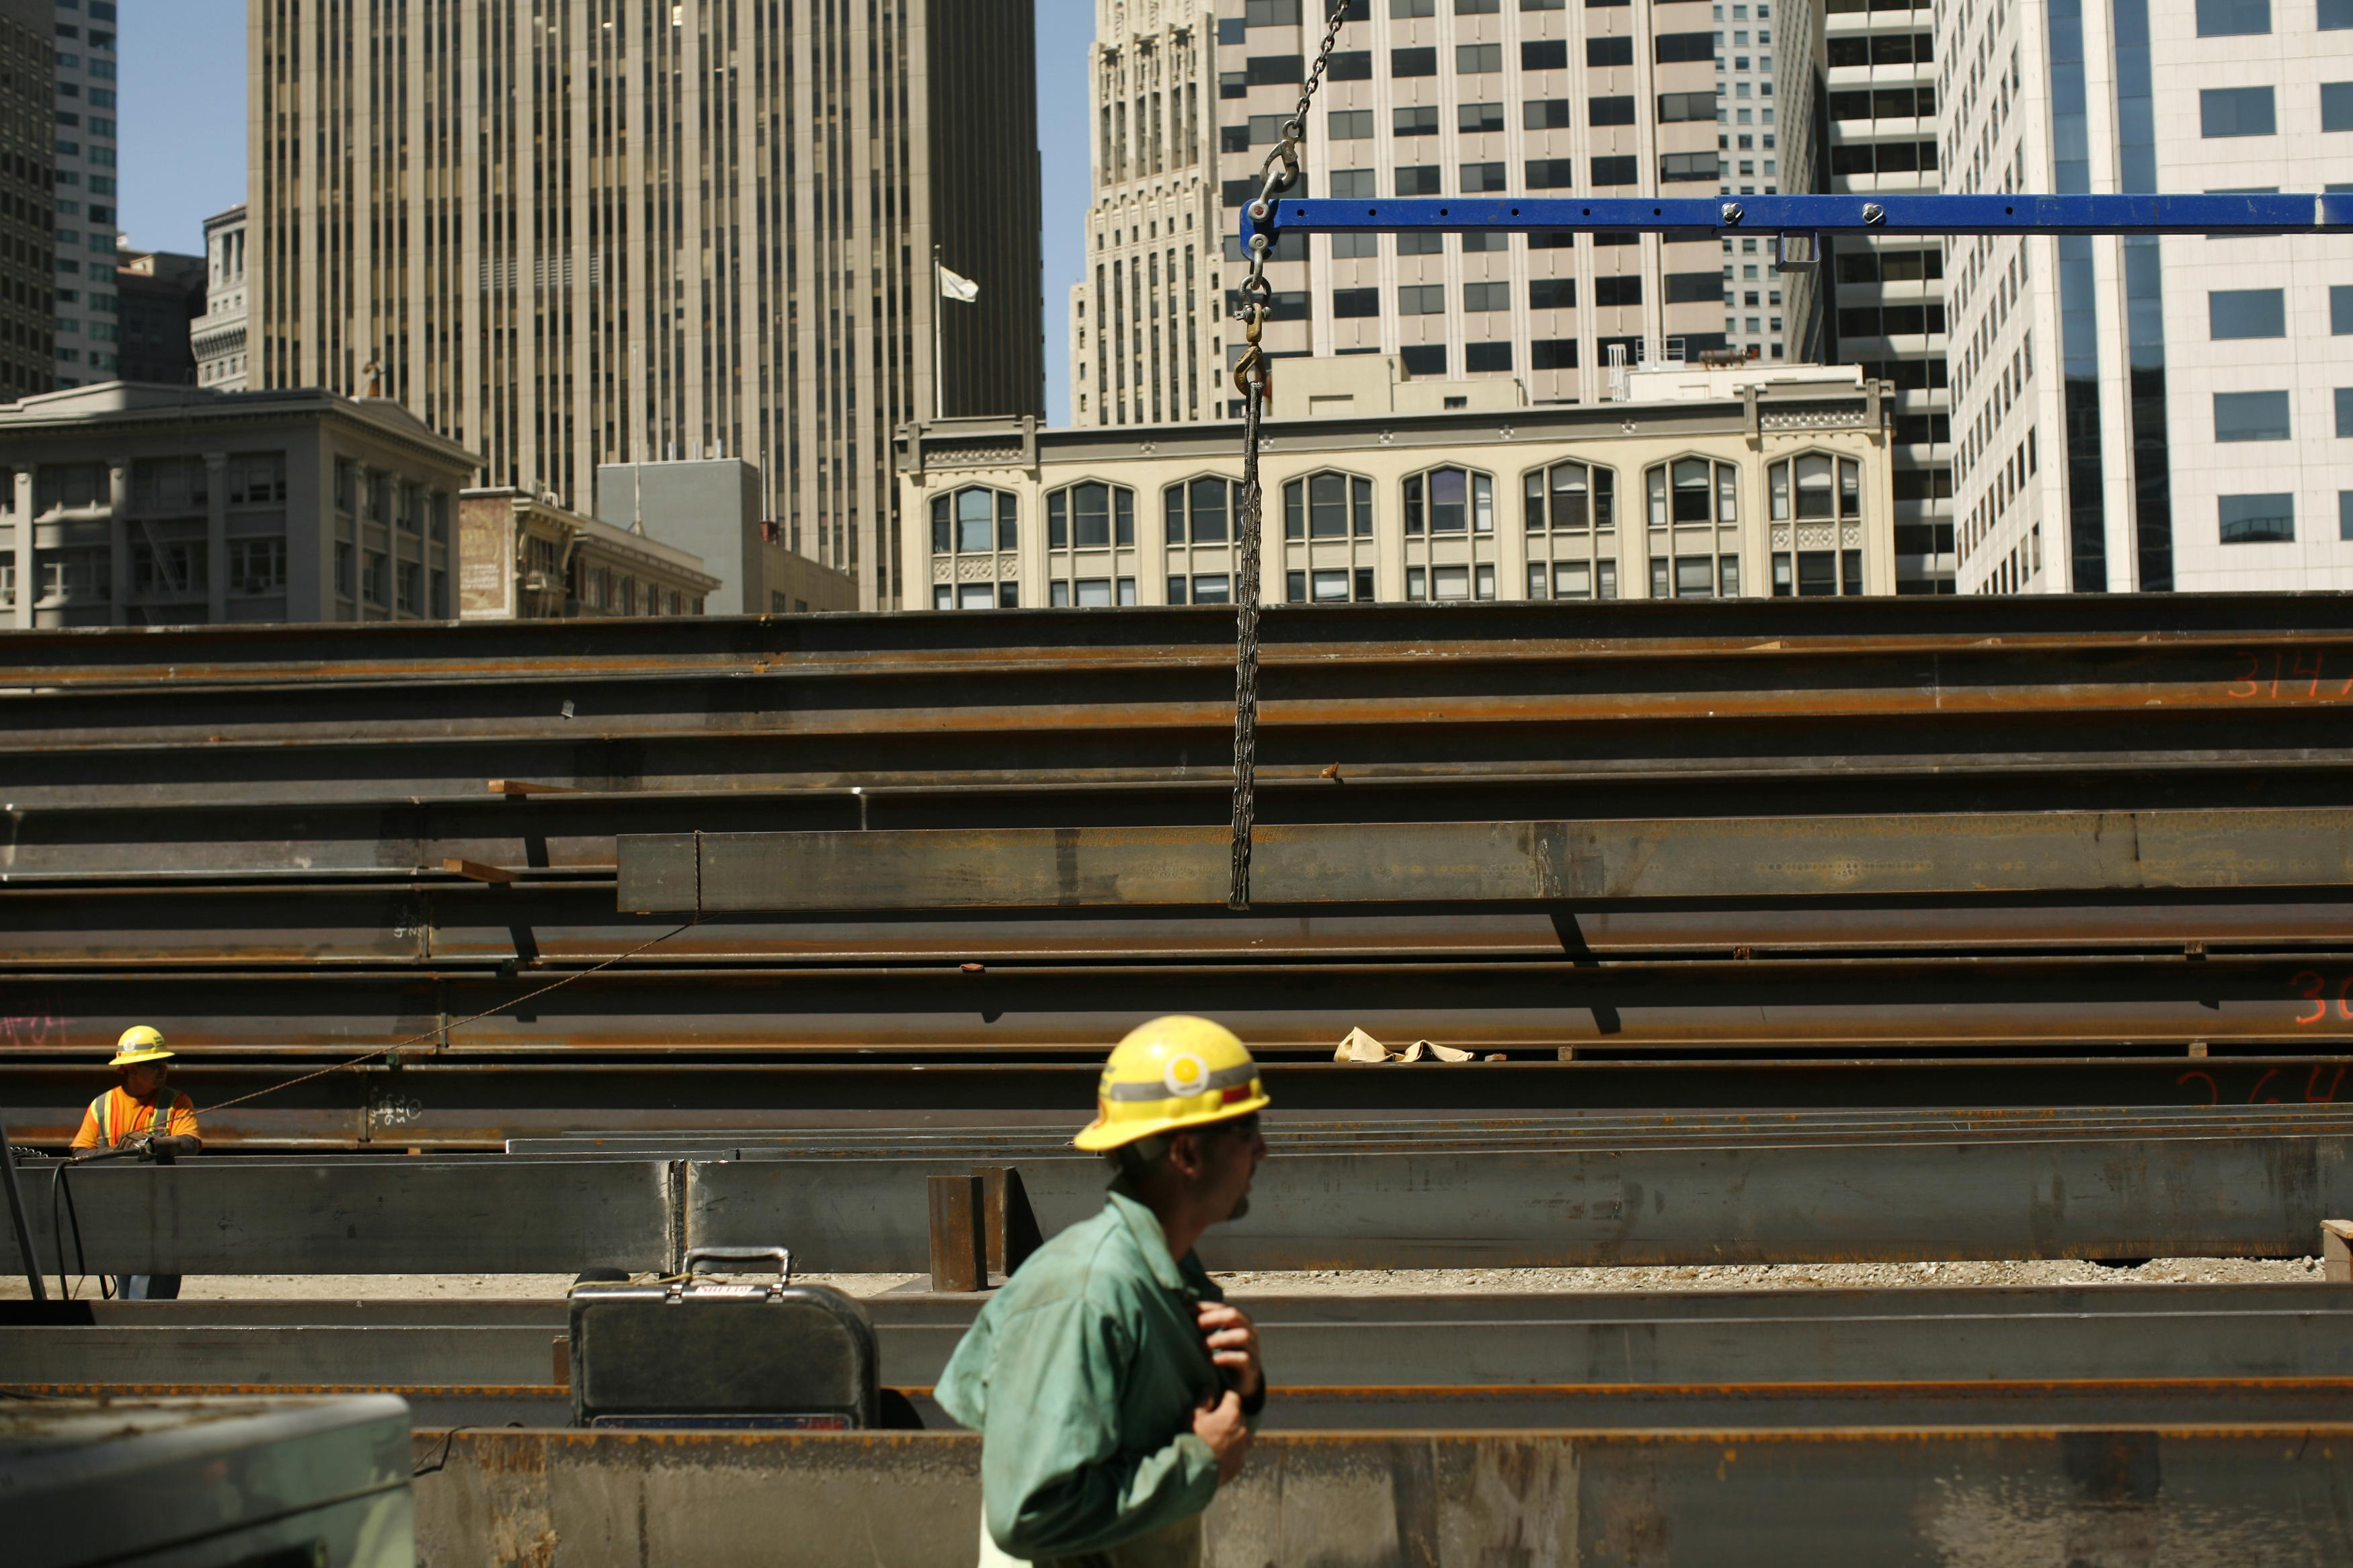 U.S. construction spending edges up in July